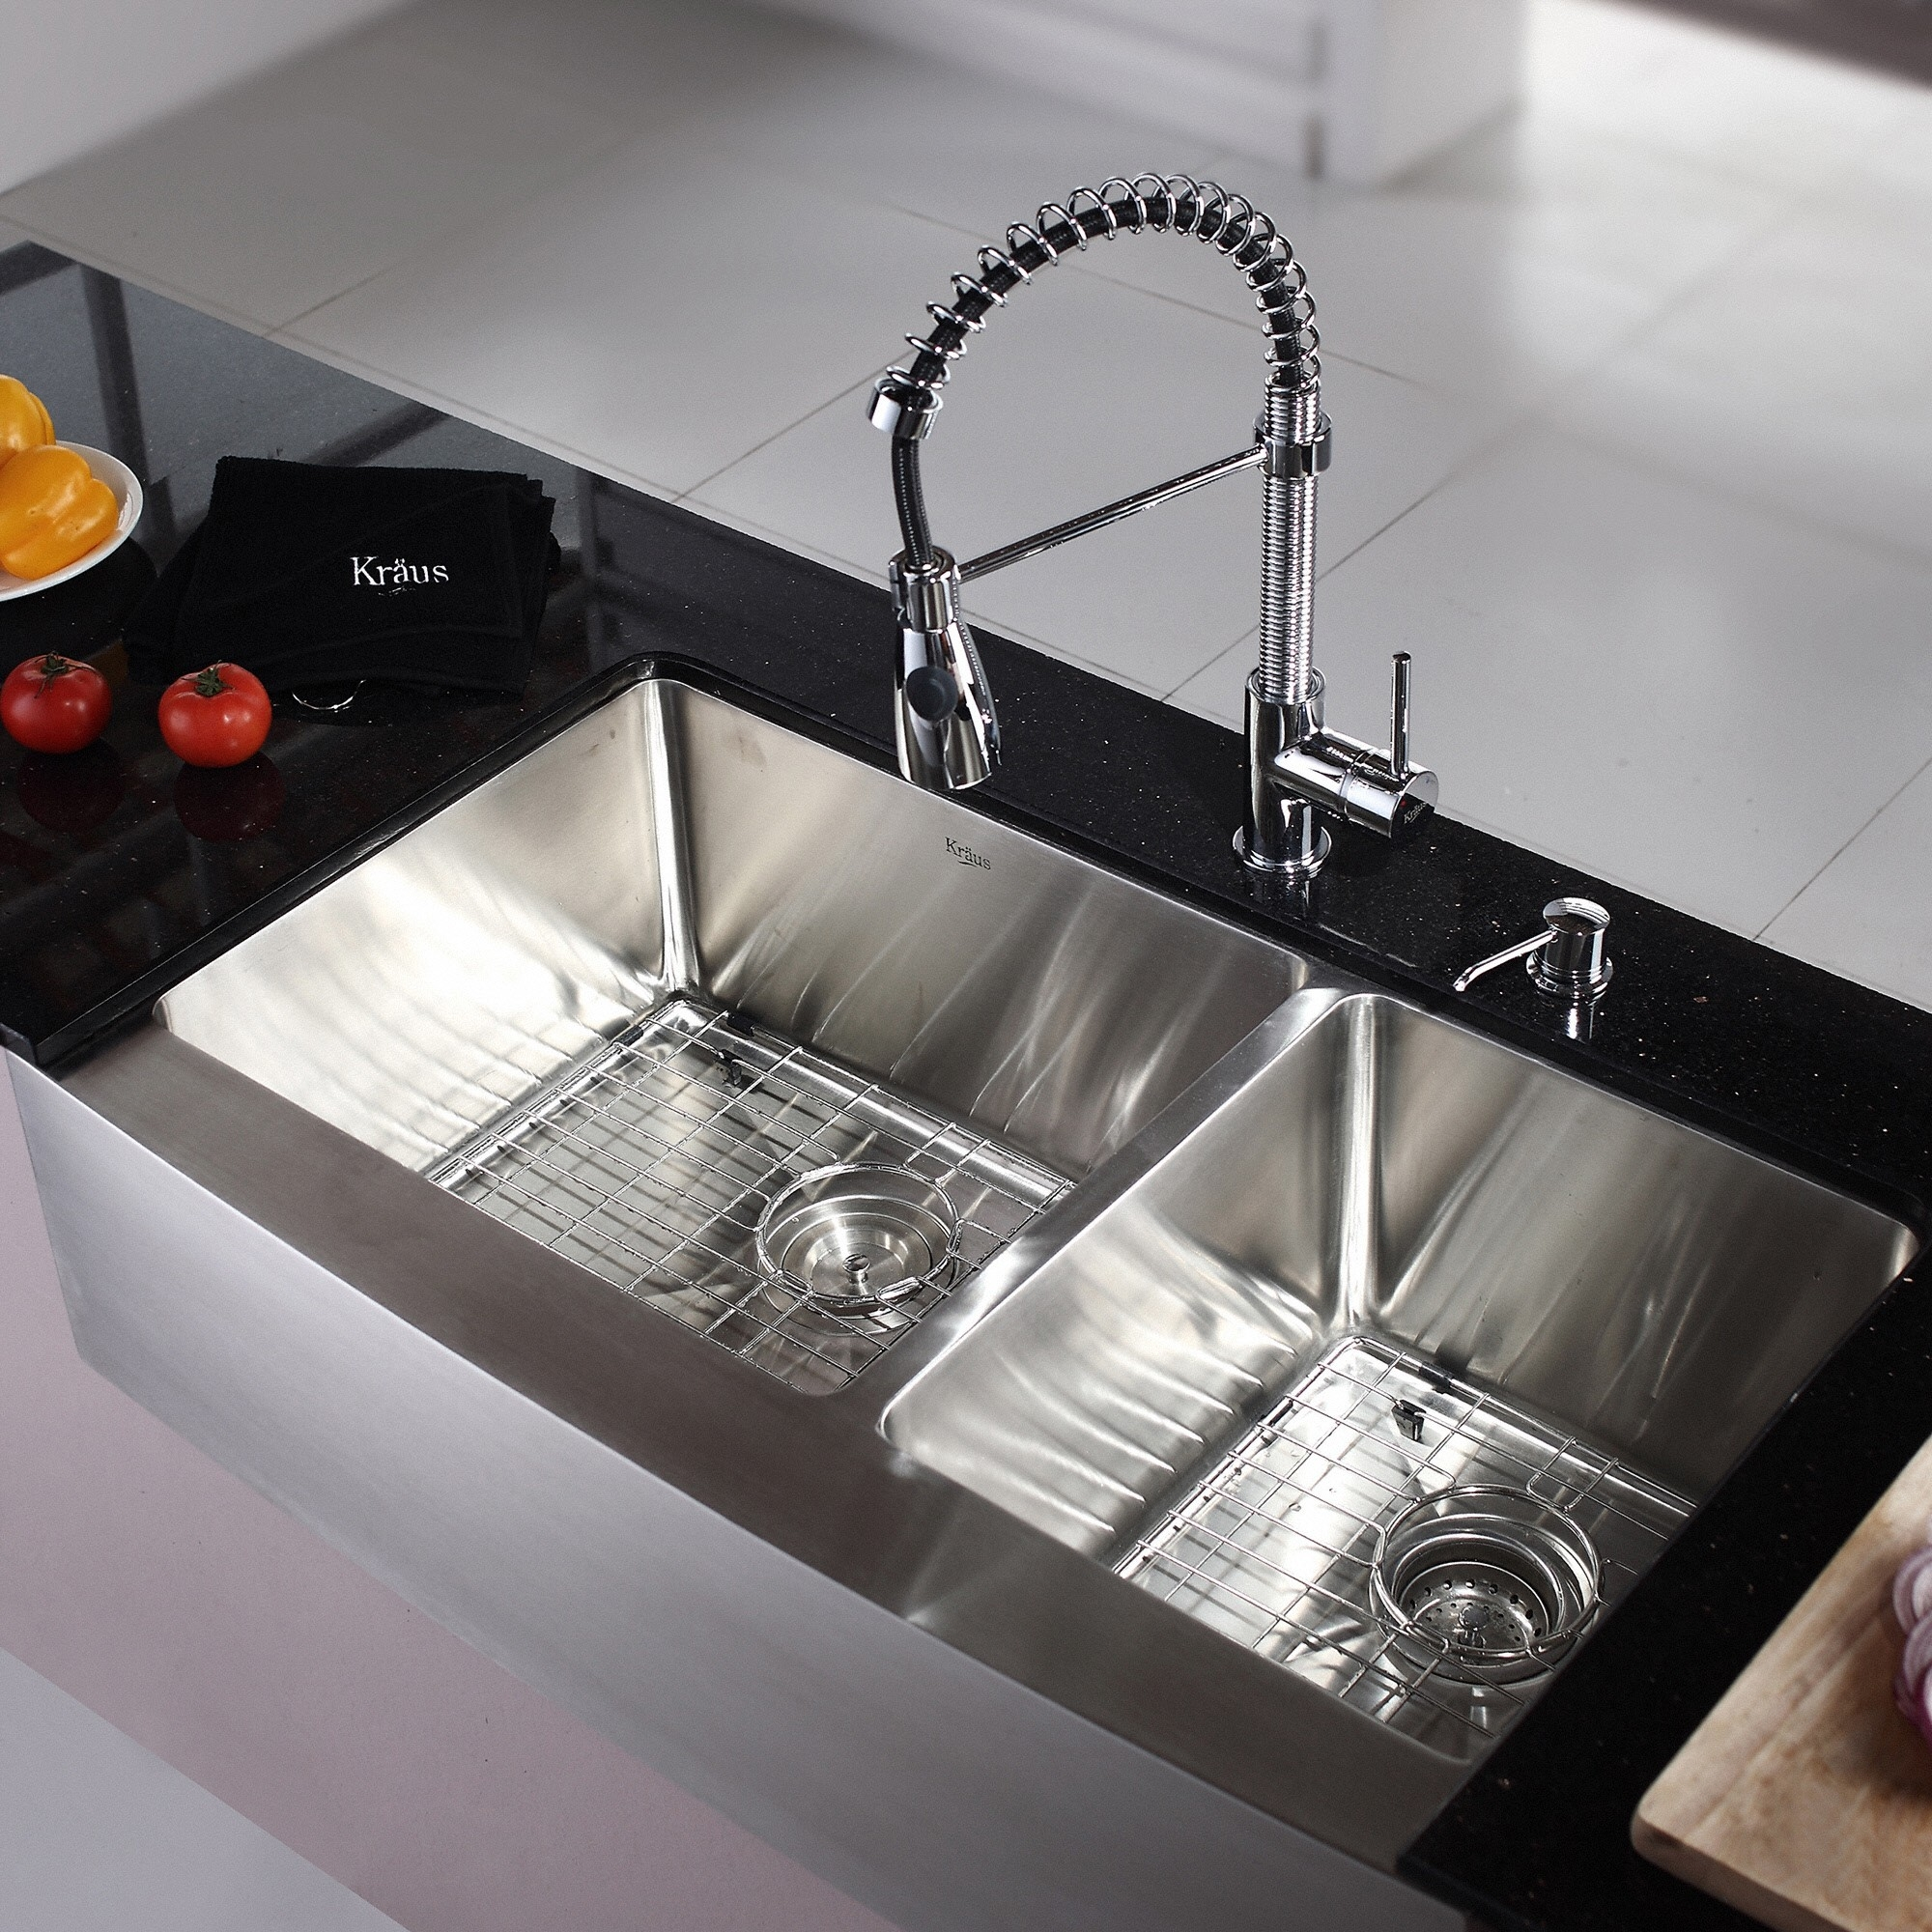 Ideas, top mount kitchen sink and faucet combo top mount kitchen sink and faucet combo modern stainless steel kitchen sink design kitchen sink kitchen 2000 x 2000  .